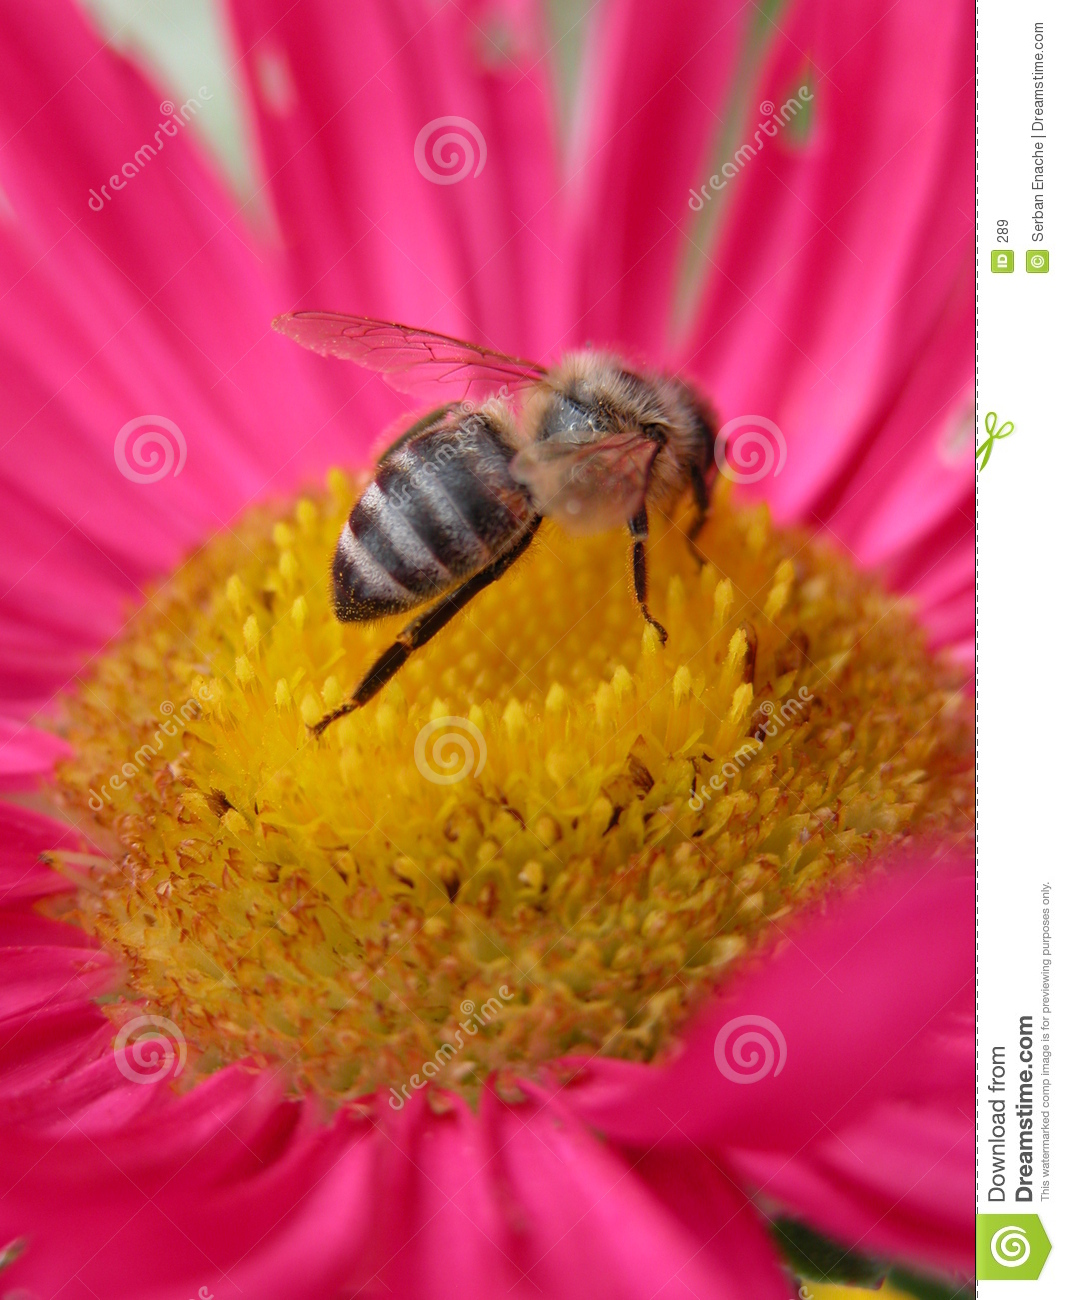 Bee on a pink flower 2